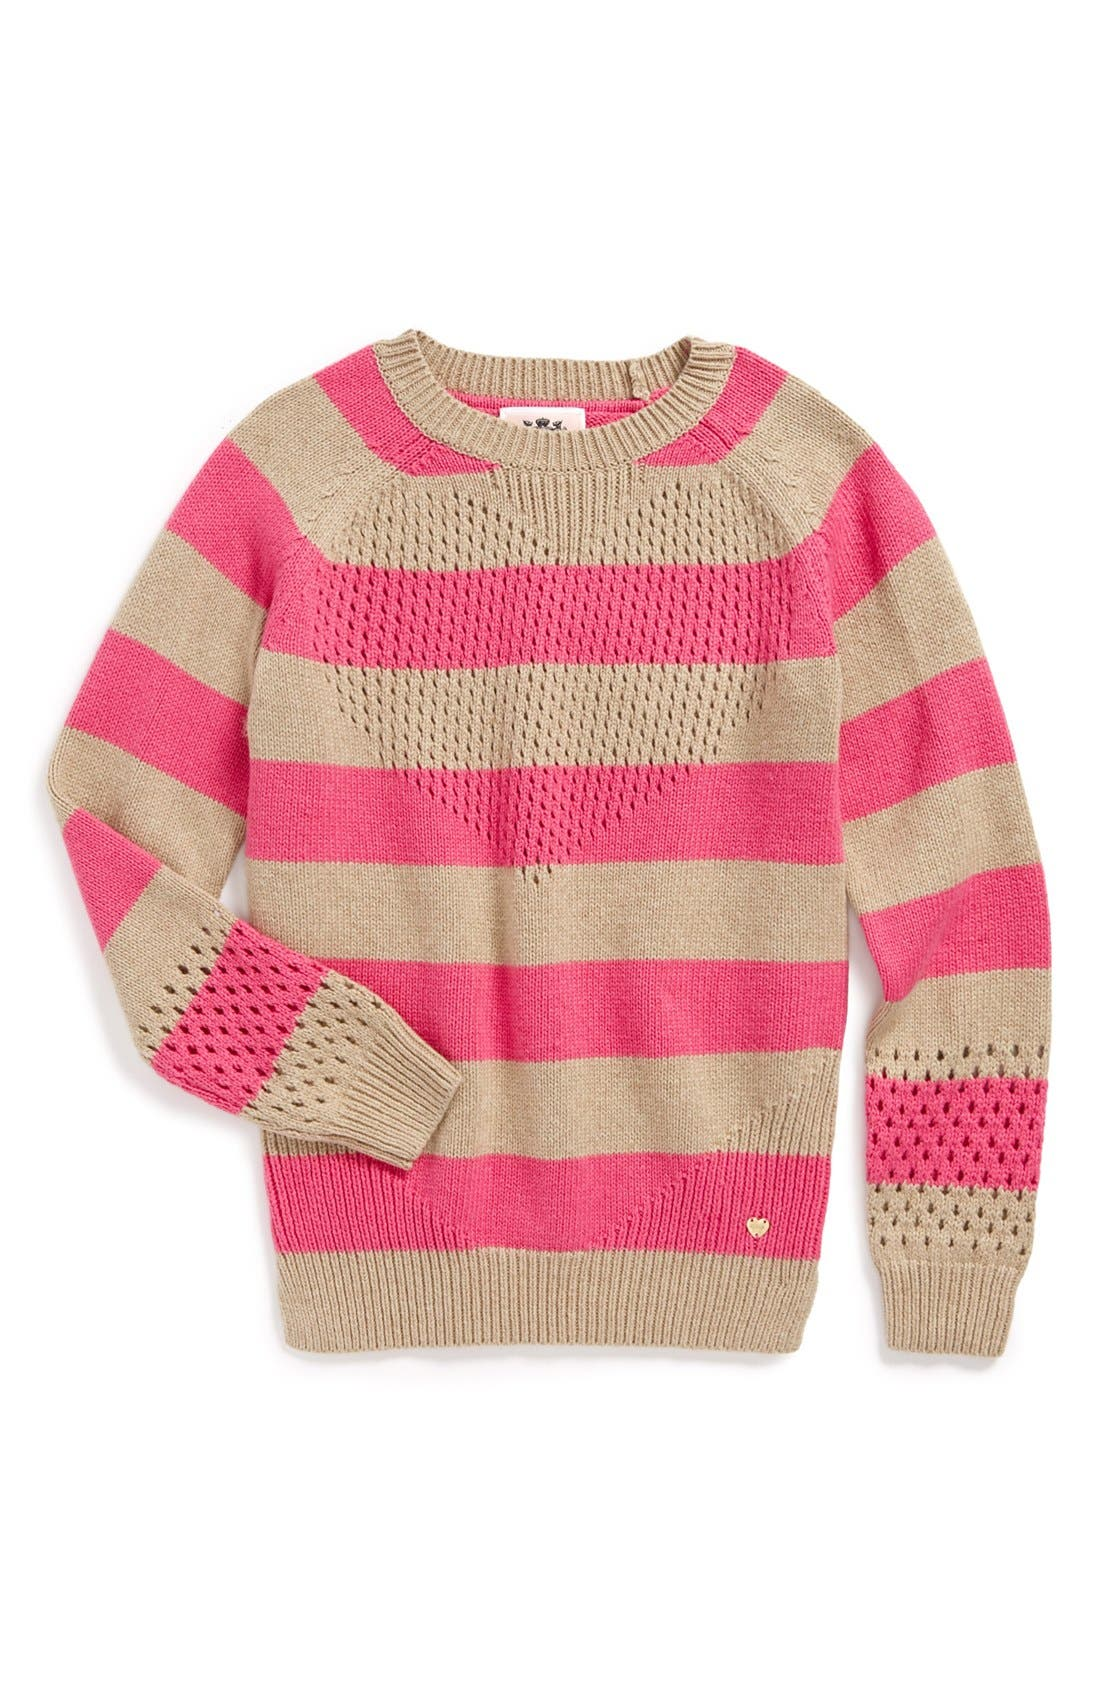 Alternate Image 1 Selected - Juicy Couture 'Pointelle Heart' Pullover (Toddler Girls, Little Girls & Big Girls)